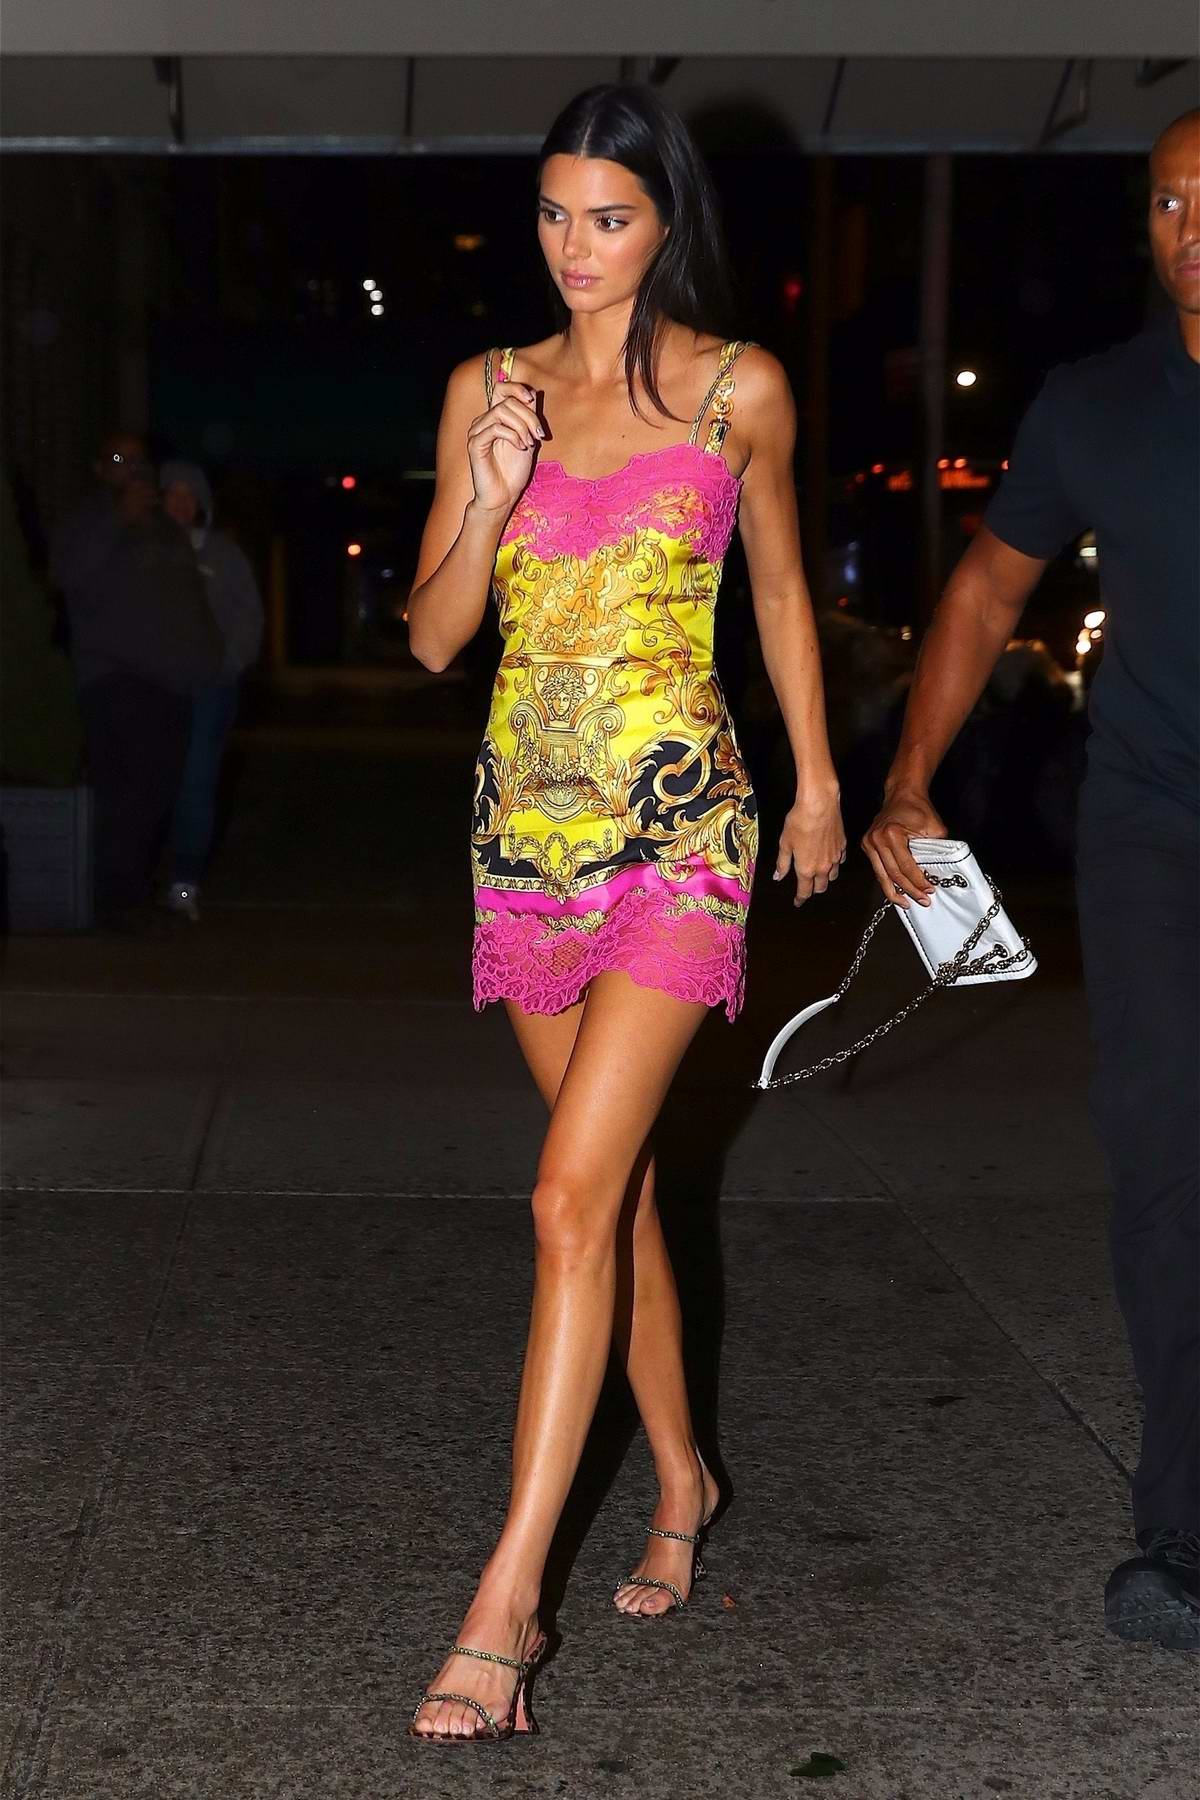 Kendall Jenner looks striking in a Versace dress while out for dinner with friends in New York City